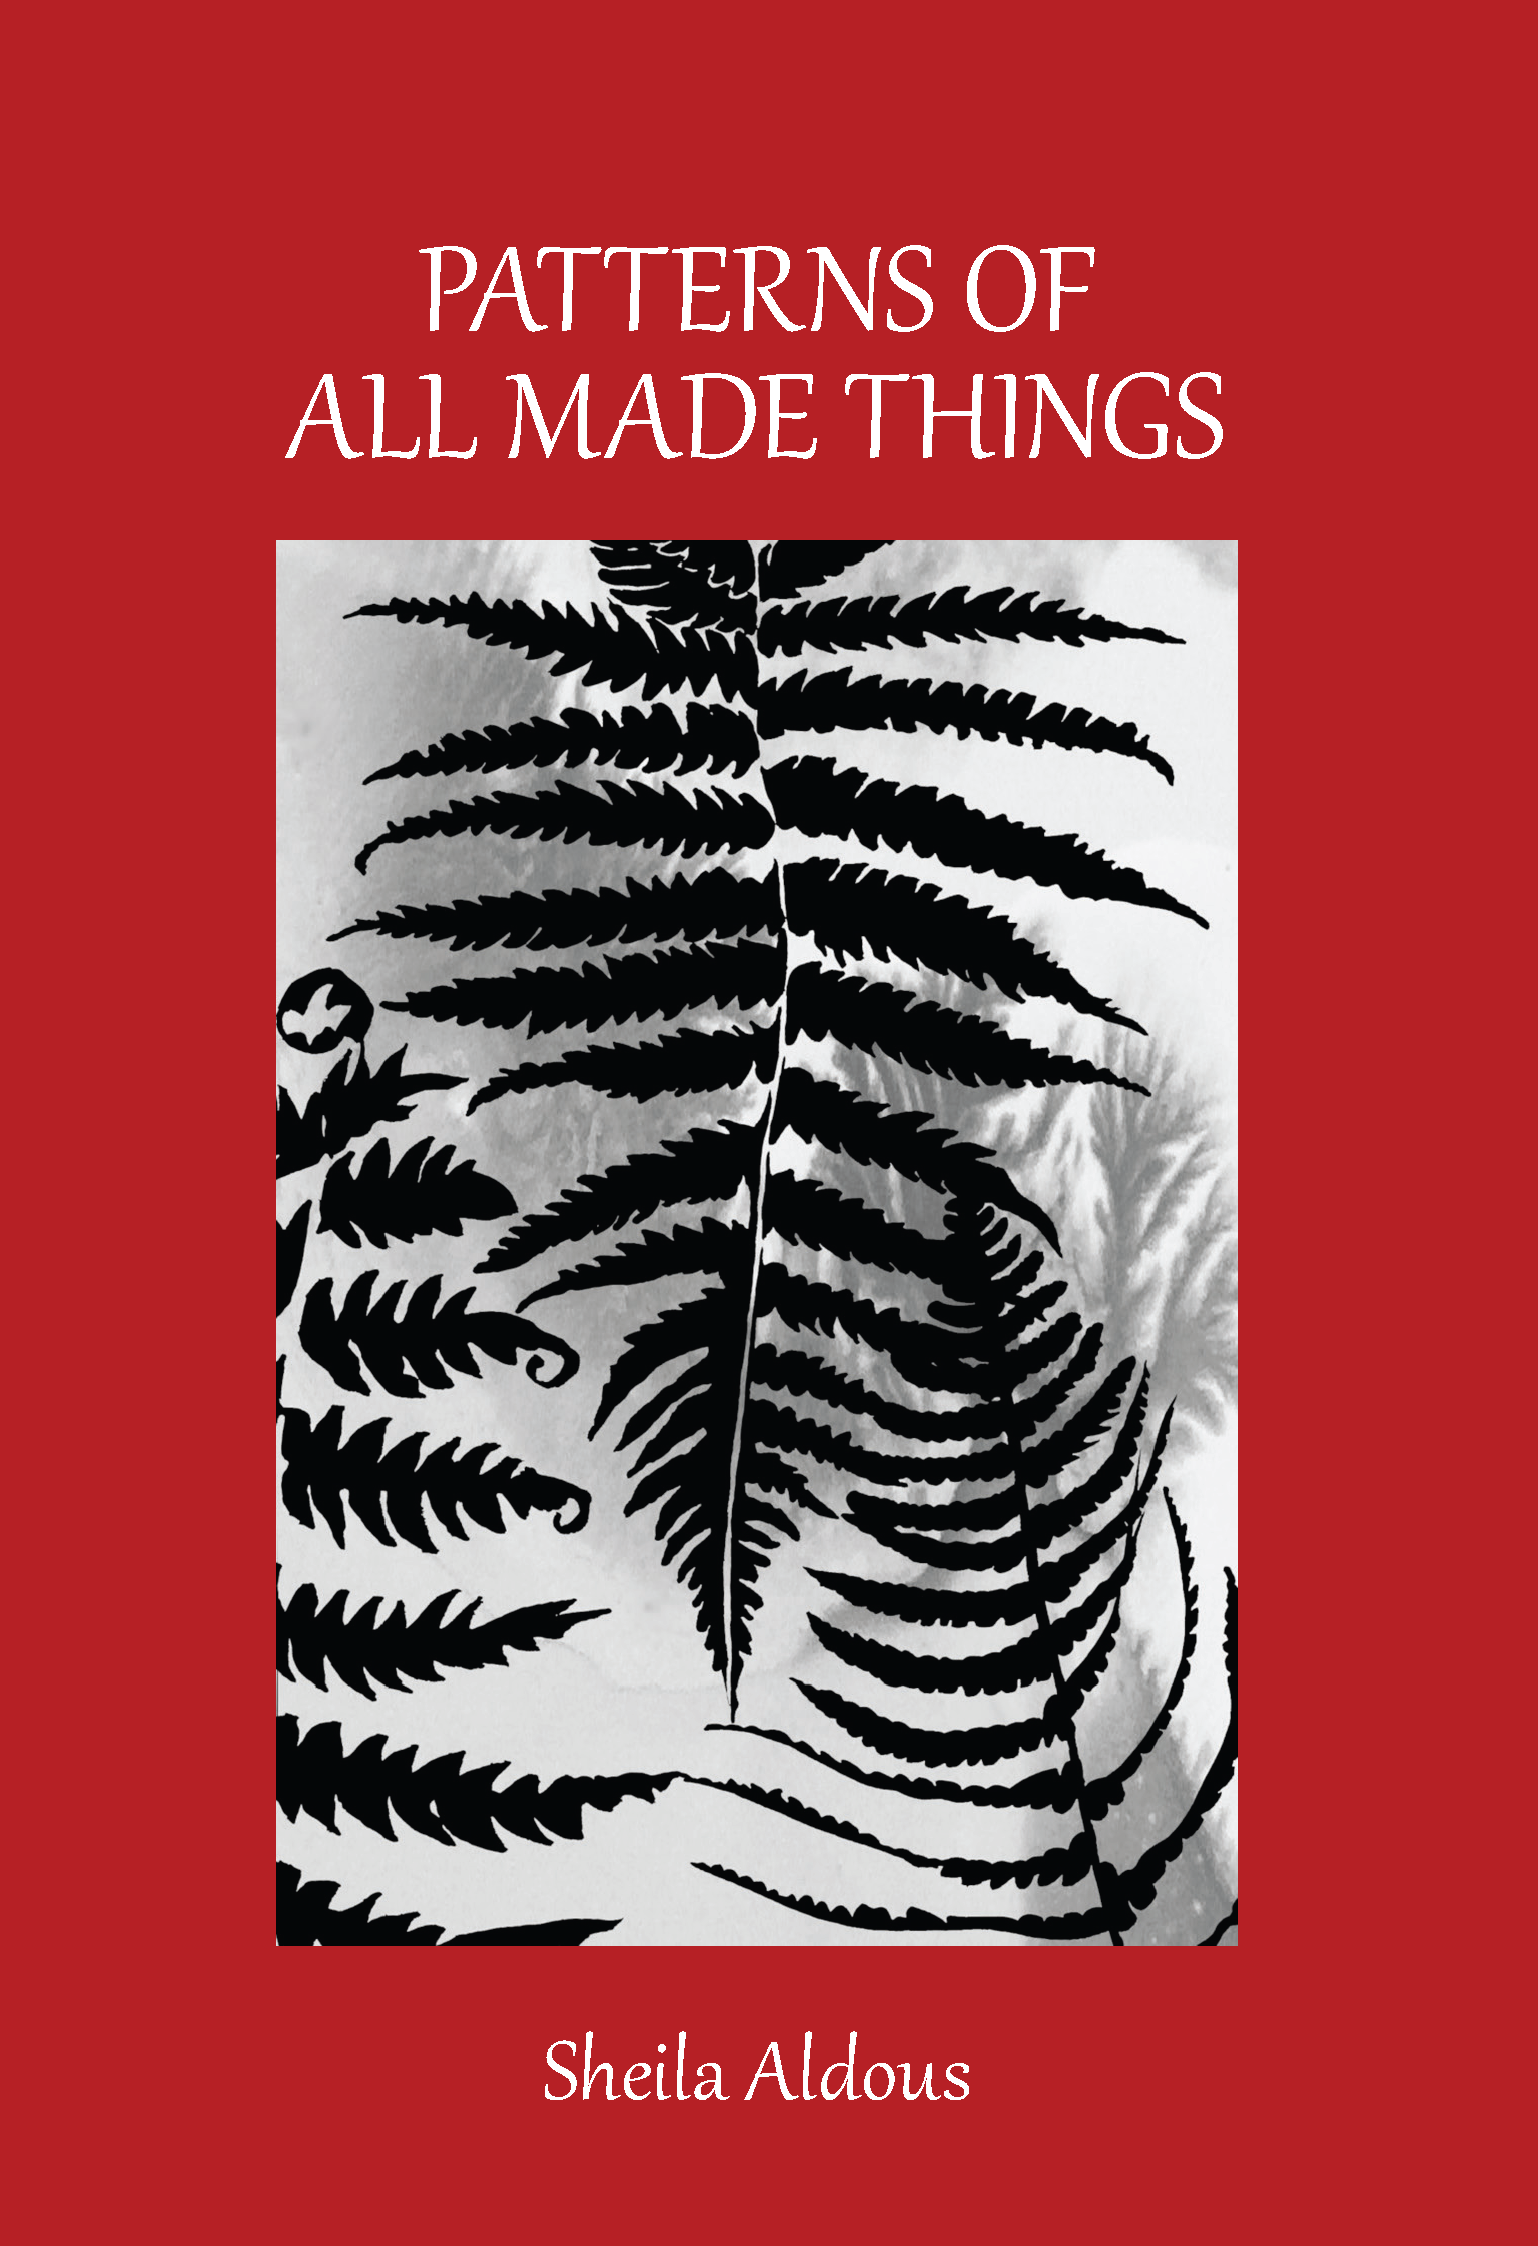 Patterns of All Made Things